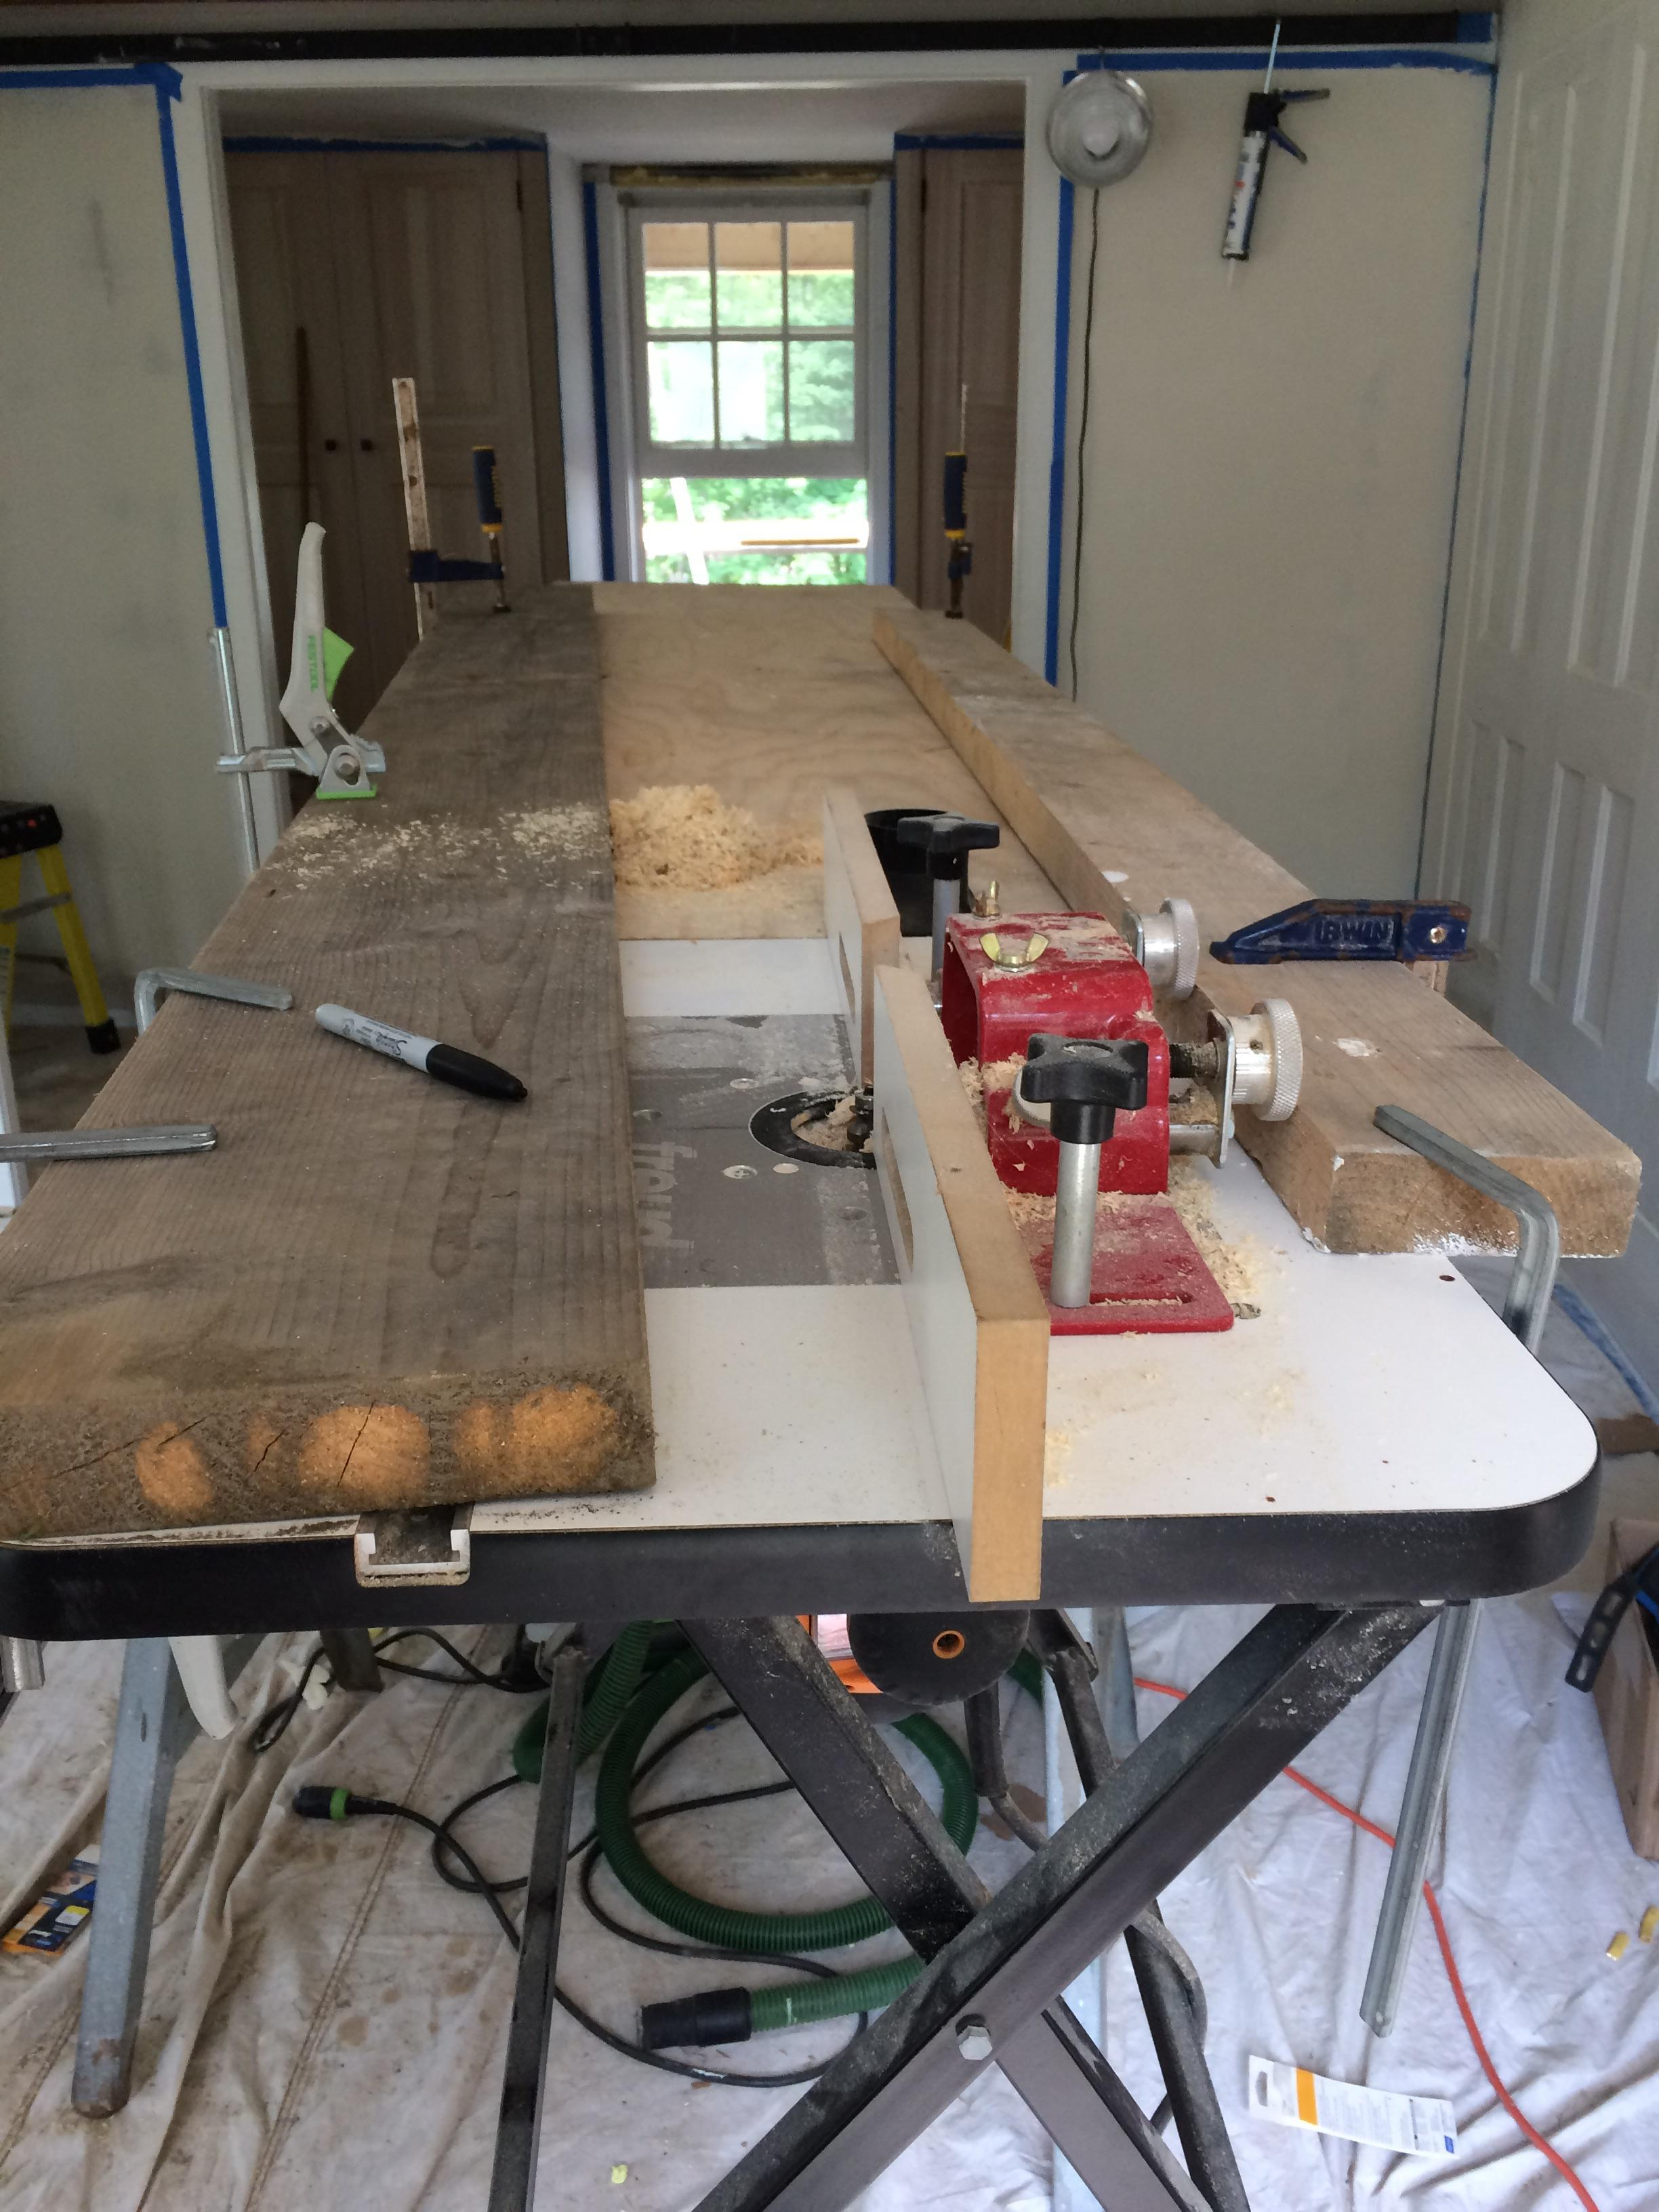 Table top router tools equipment contractor talk table top router image1438103290413g keyboard keysfo Choice Image